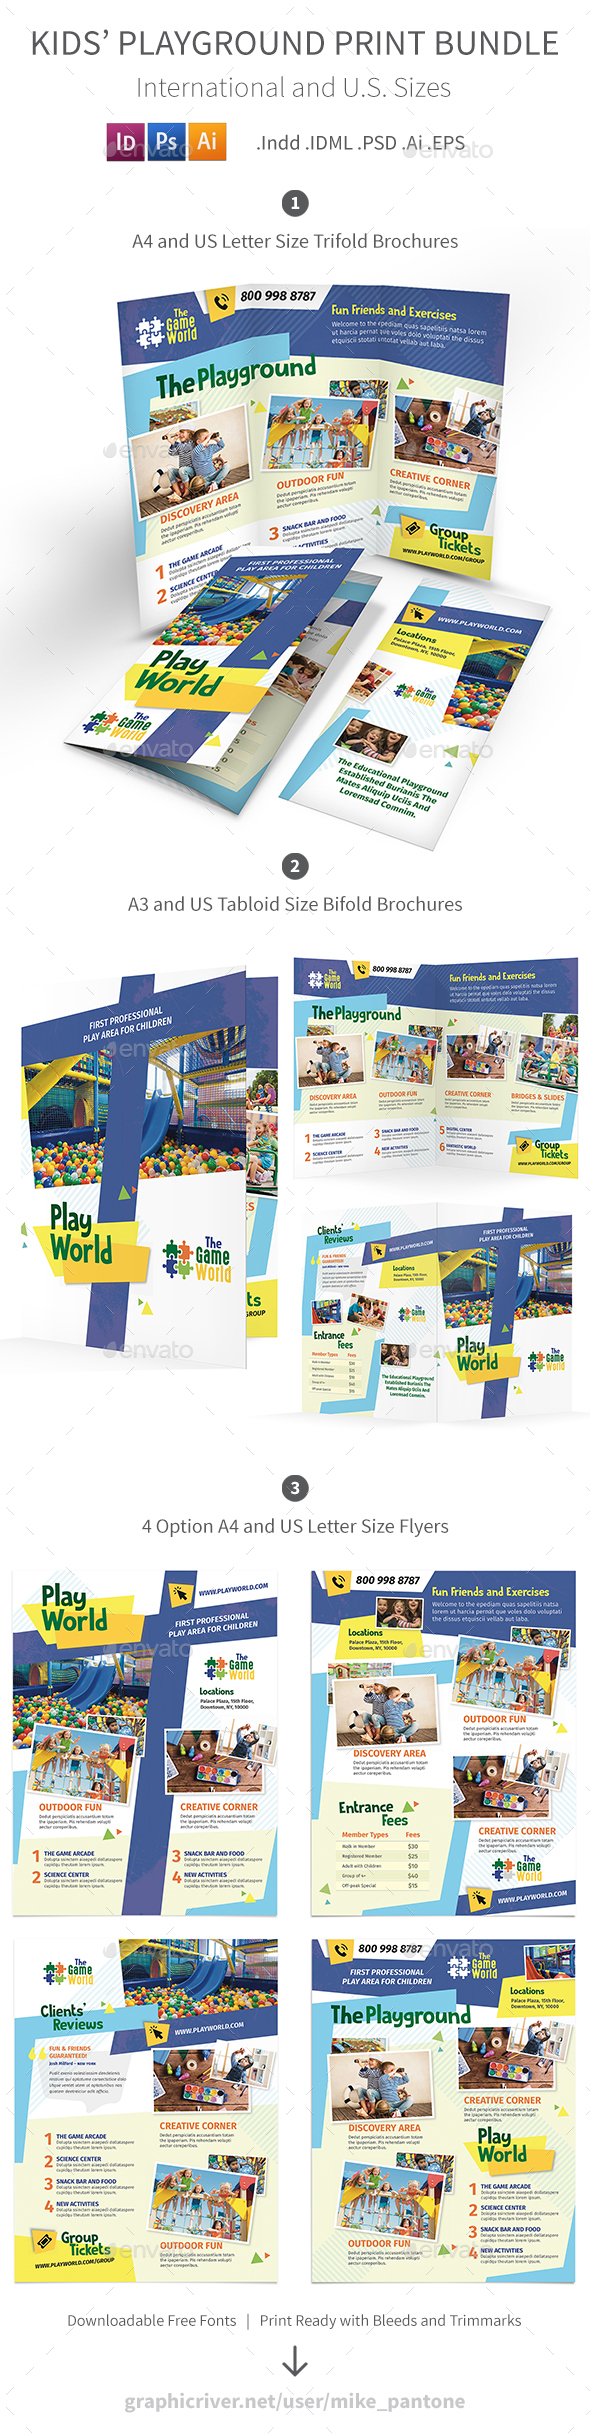 Kids' Playground Print Bundle - Informational Brochures